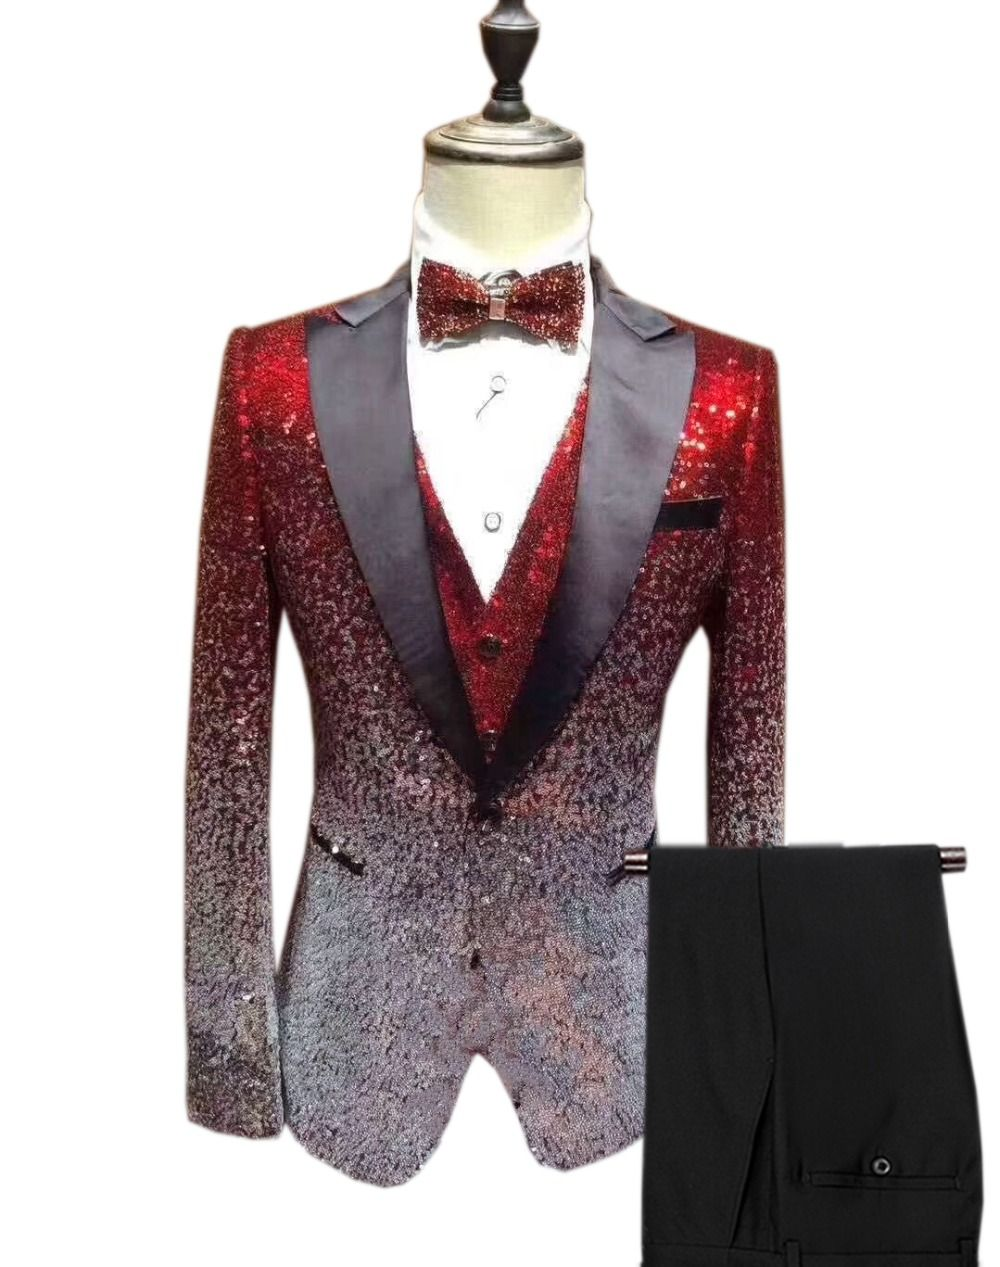 3 Pieces Men Suits Sequins Material And Black Groom Tuxedos Peak Lapel Groomsmen Wedding Best Man ( Jacket+Pants+Tie ) C761